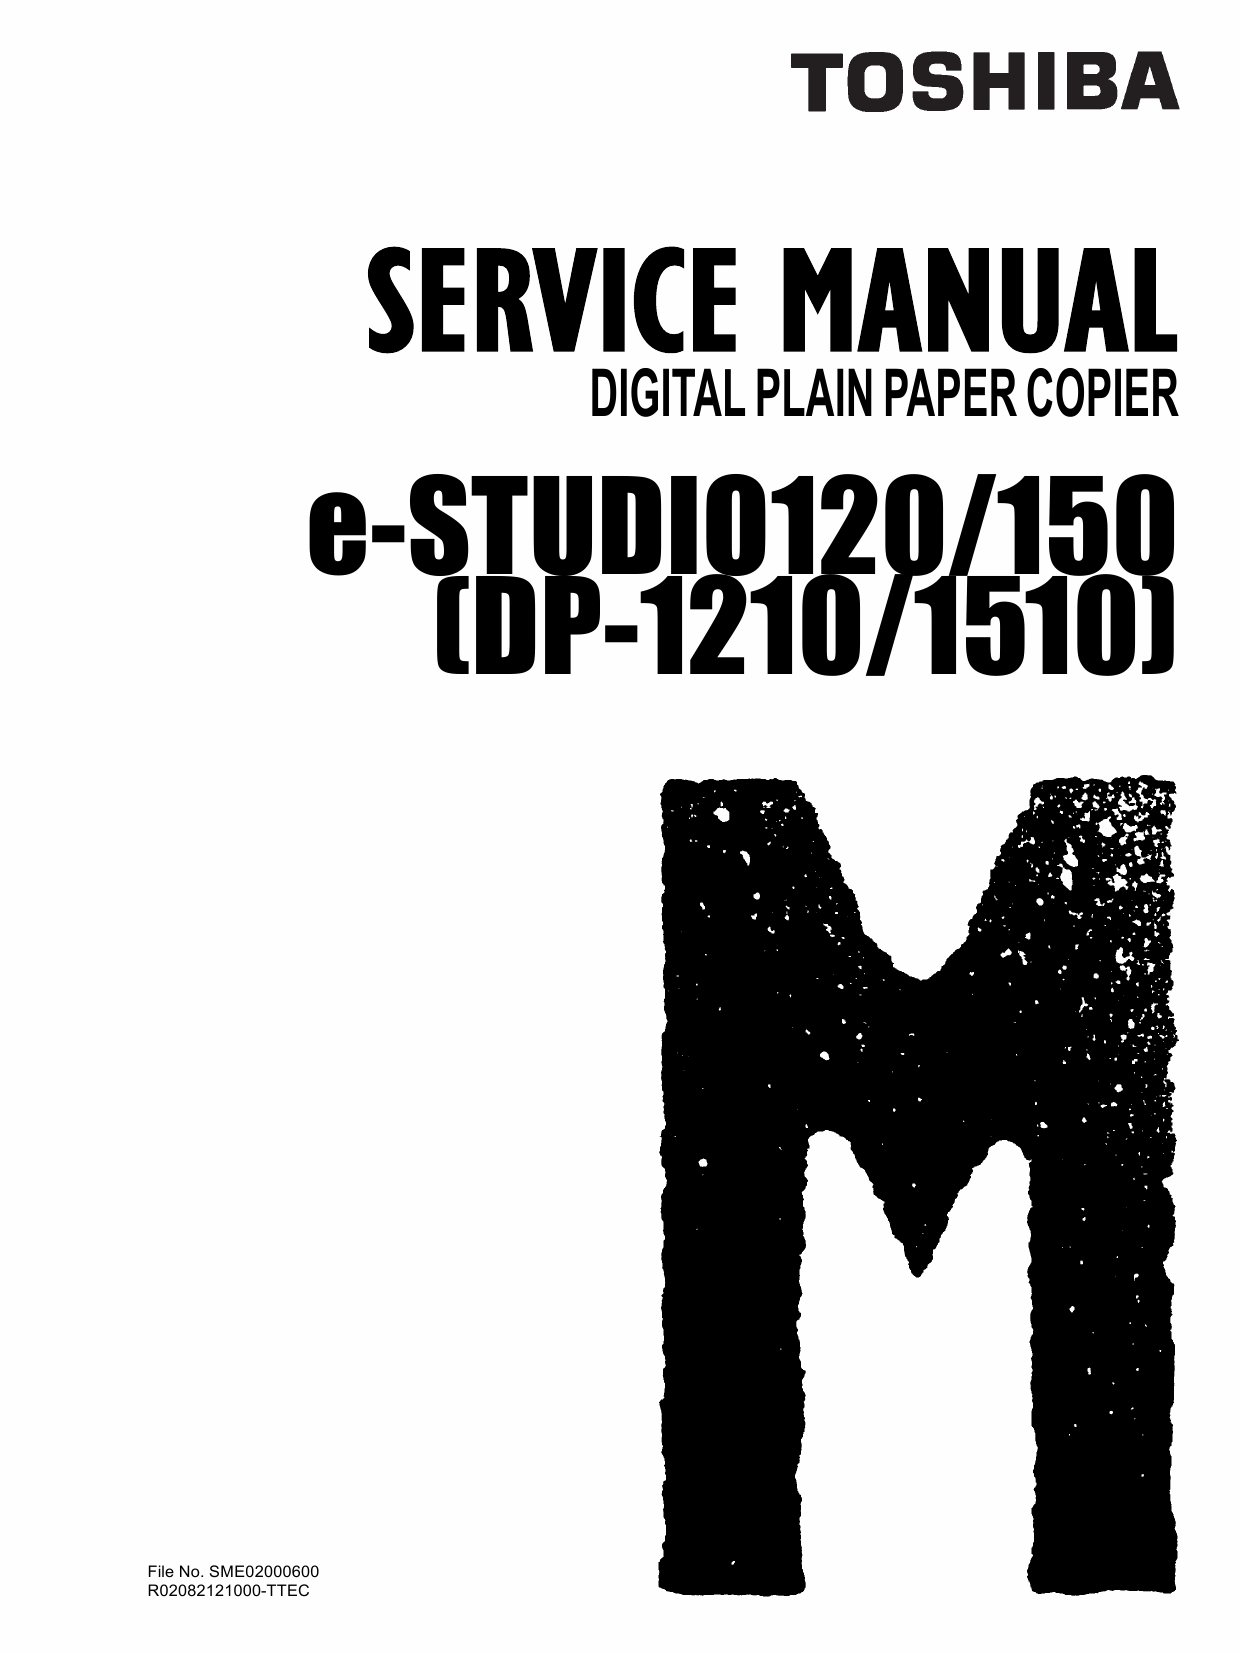 TOSHIBA e-STUDIO 120 150 DP1210 1510 Service Manual